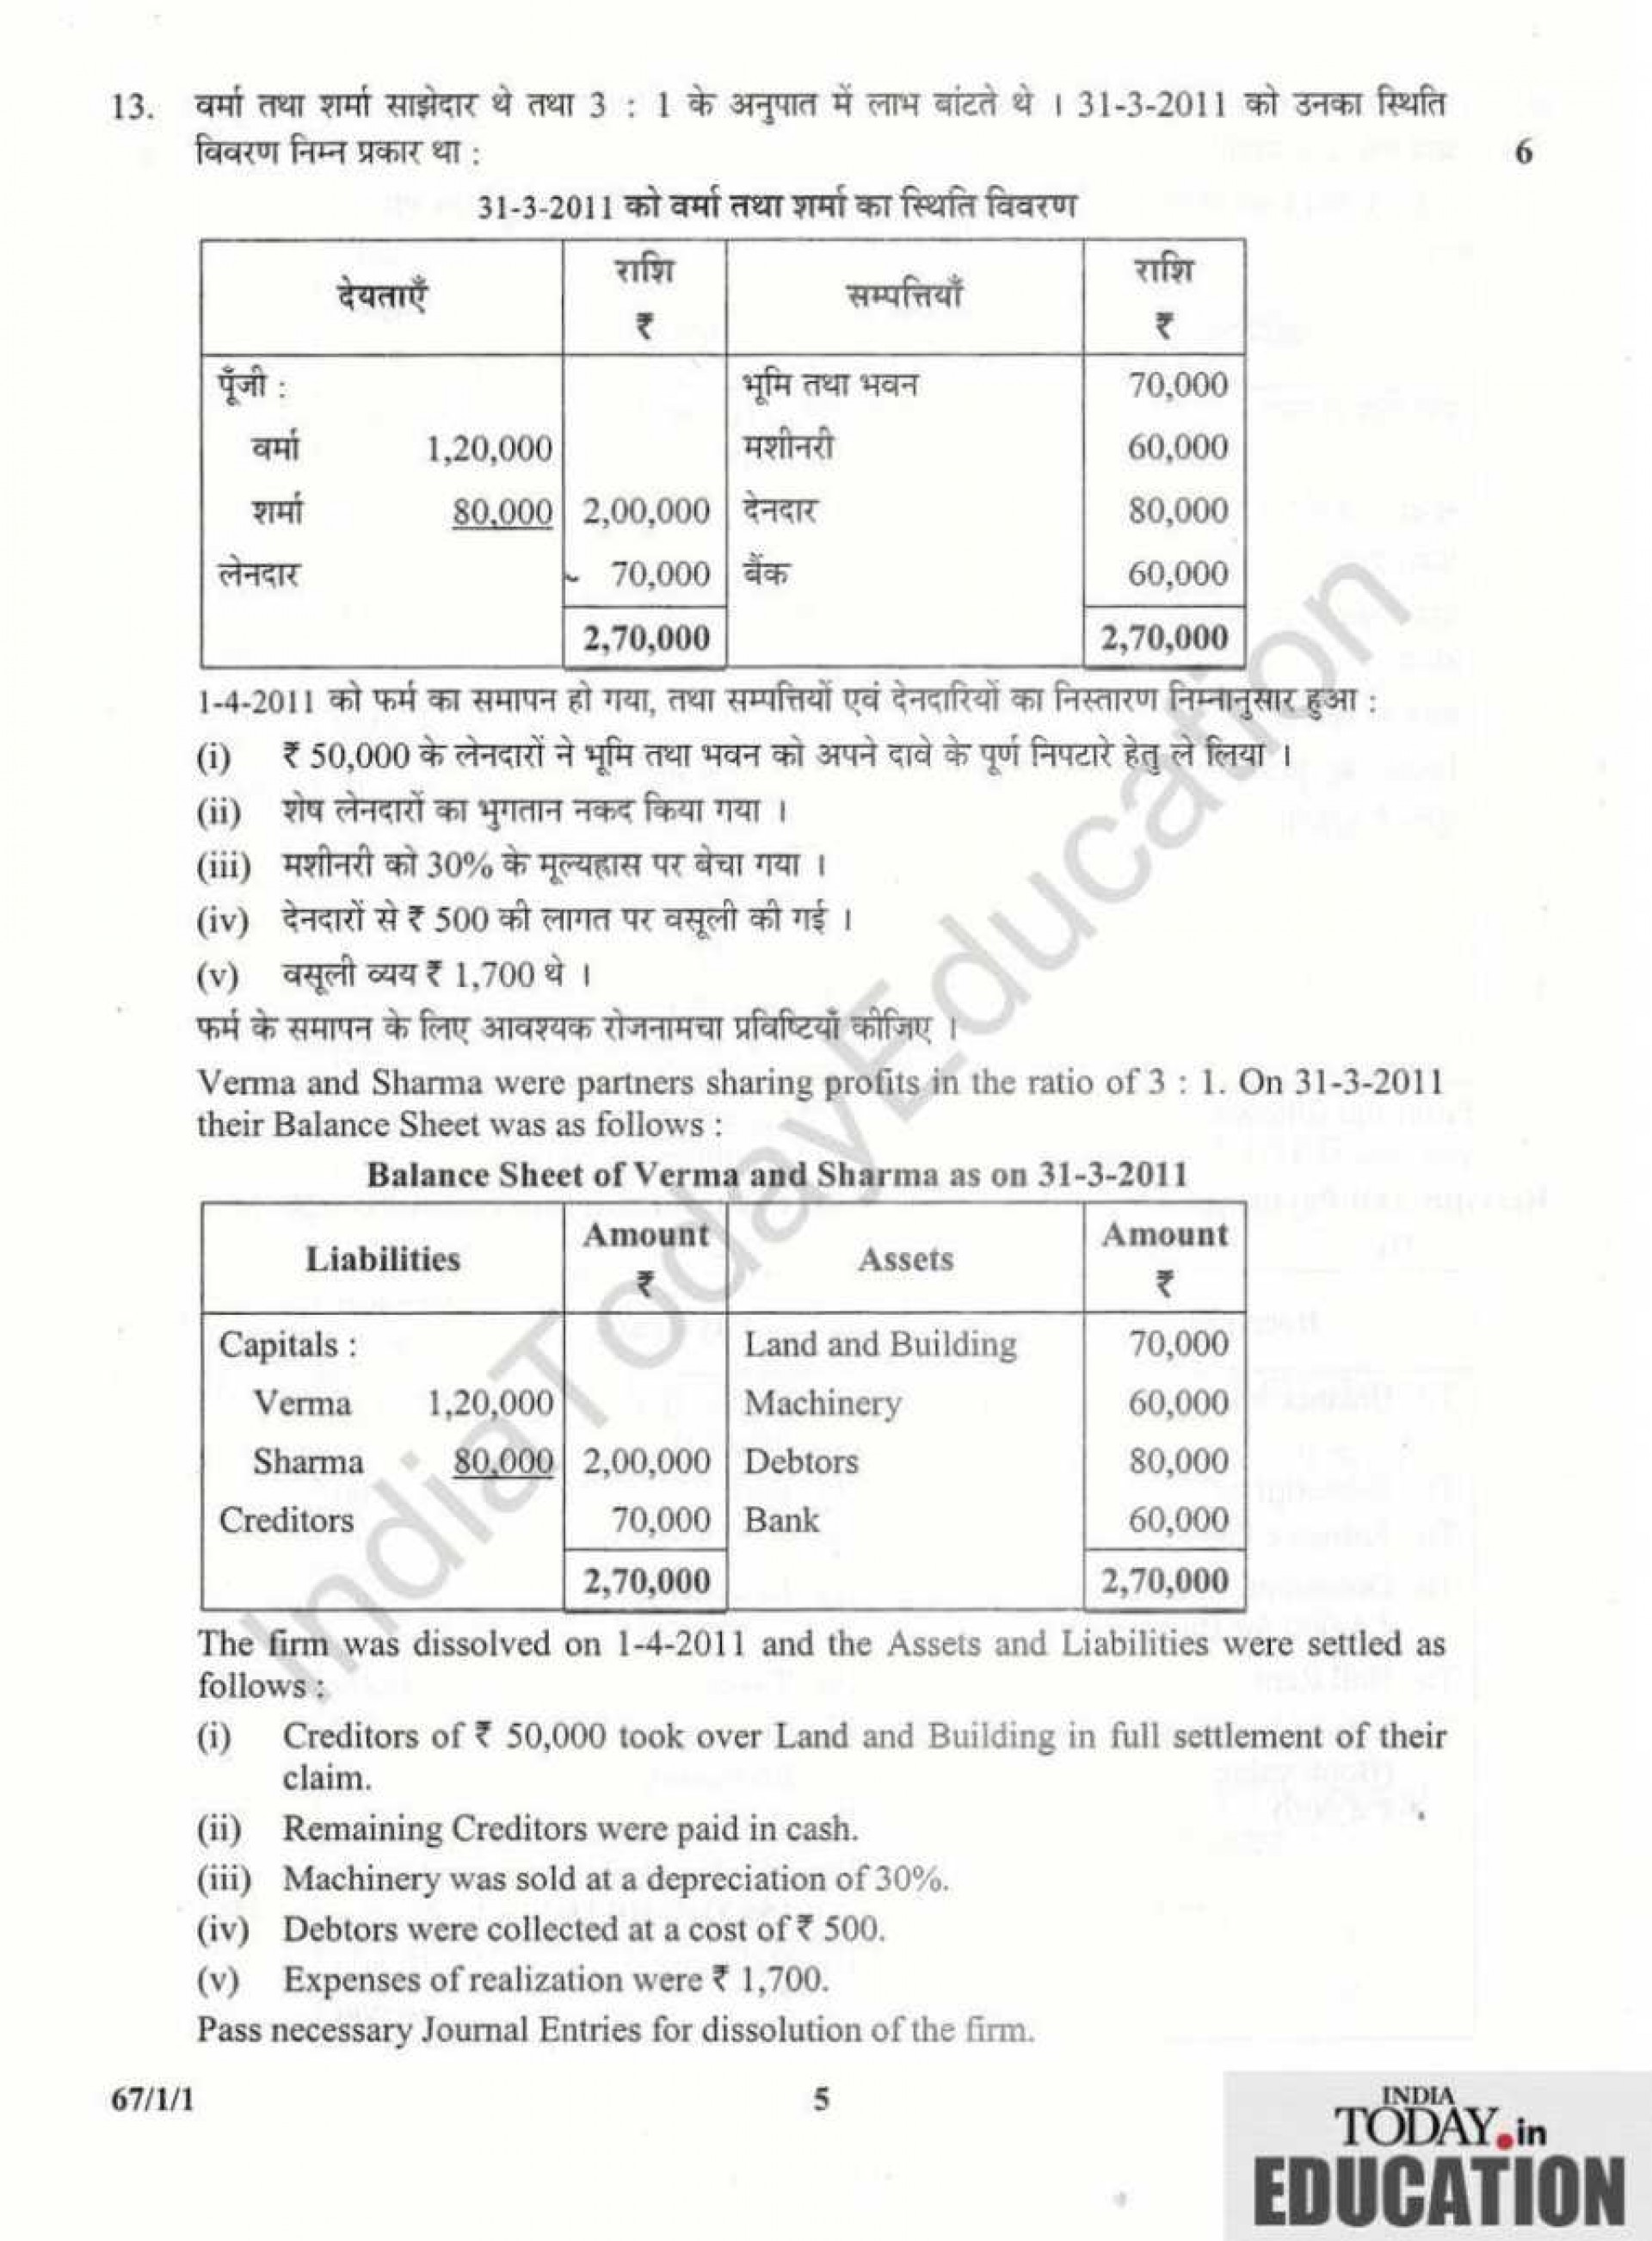 027 Uw Application Essay Cbse Board Xii Commerce Previous Year Question Papers Incredible Madison Examples Transfer 1920